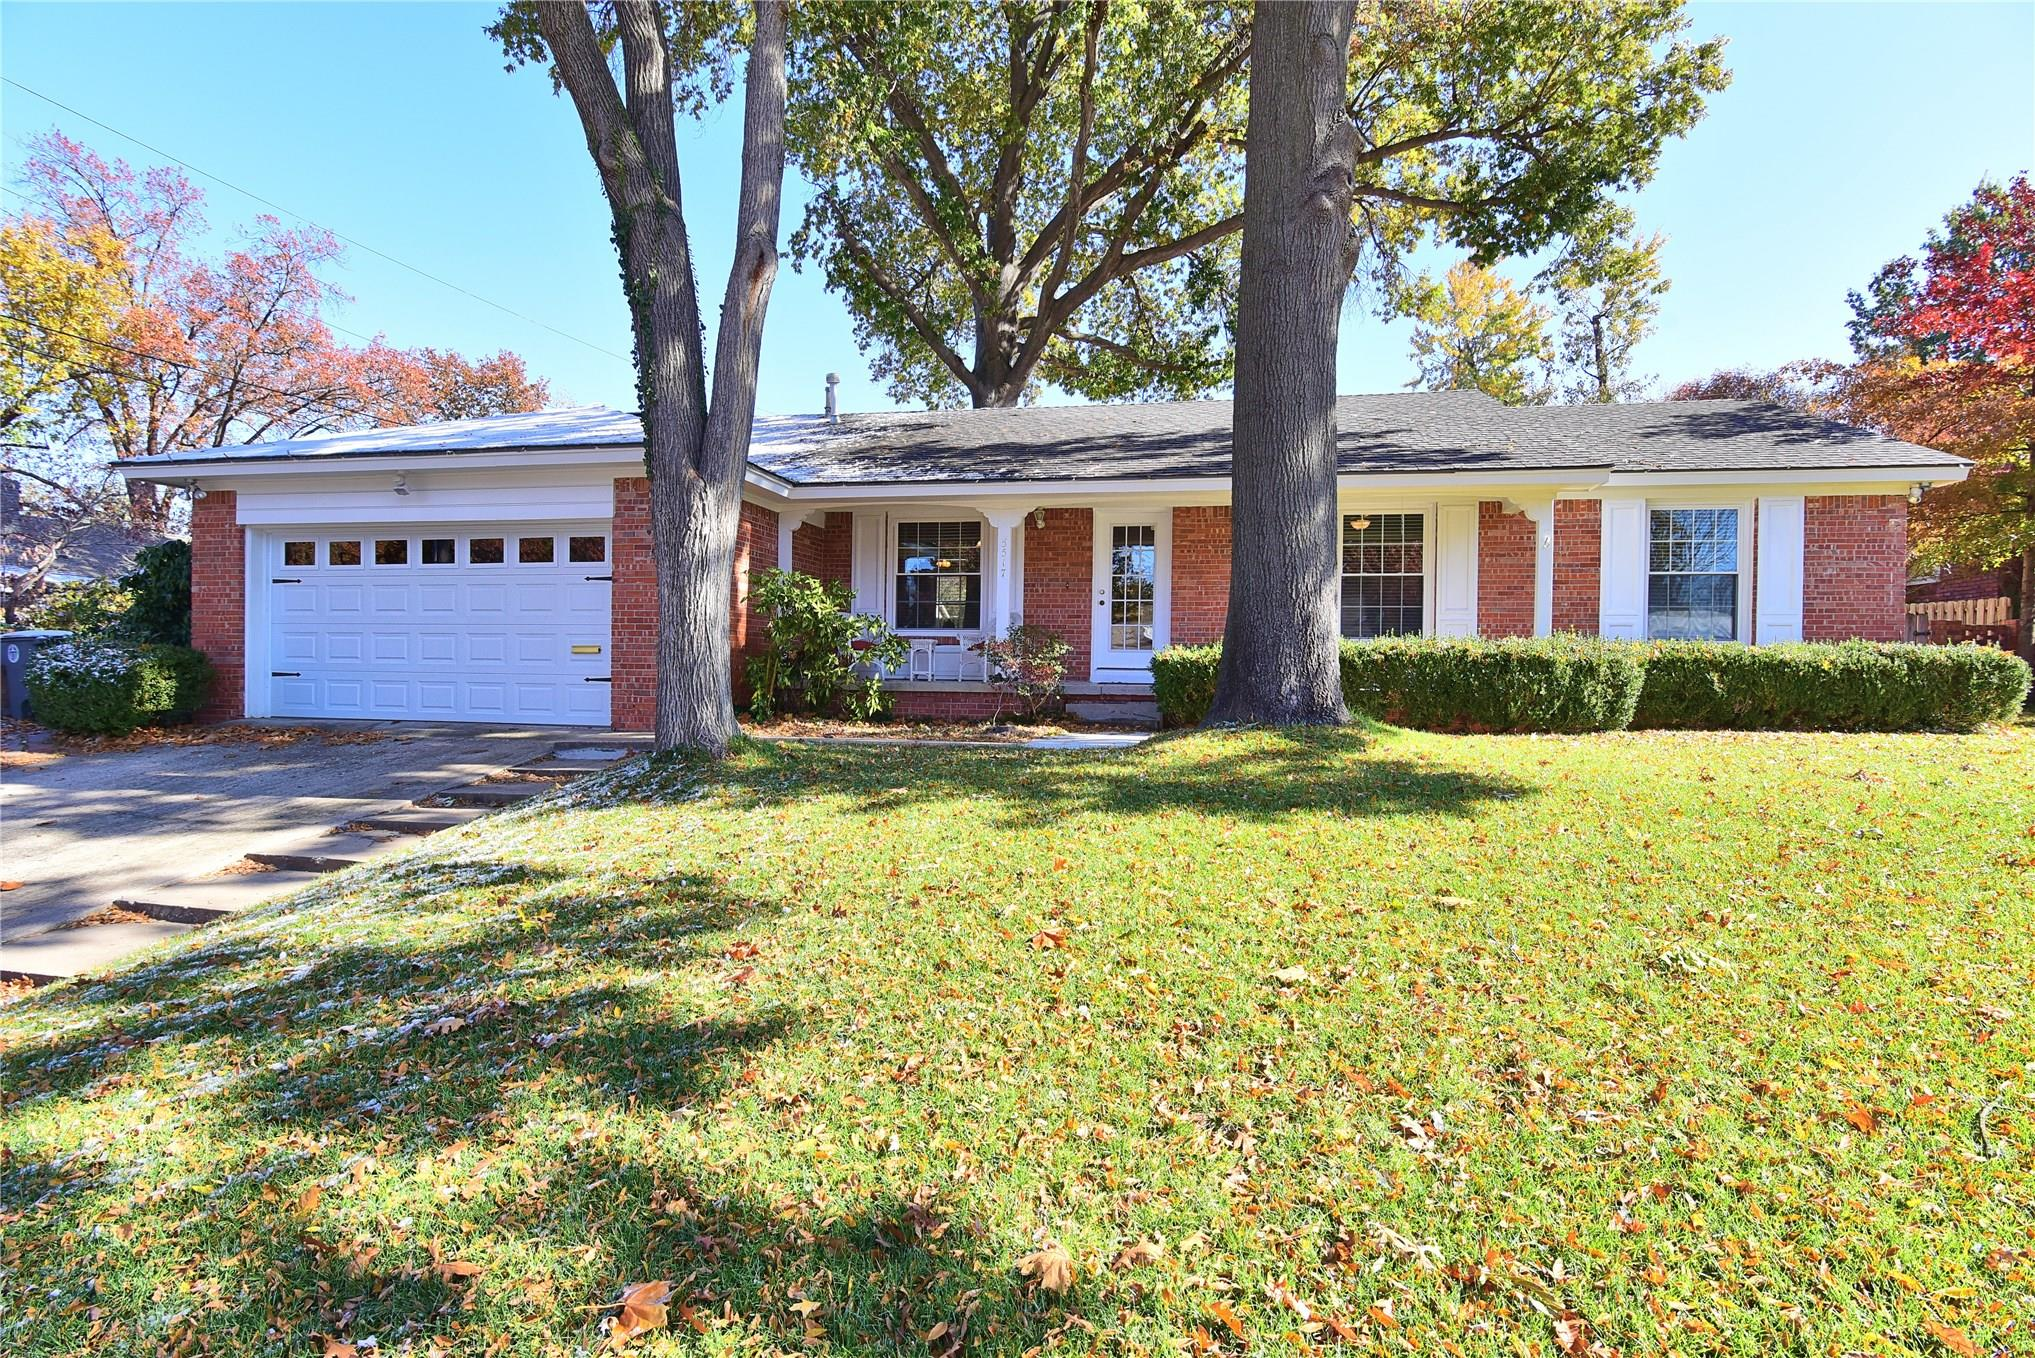 5517 S Toledo Place - $178,000 - SOLD